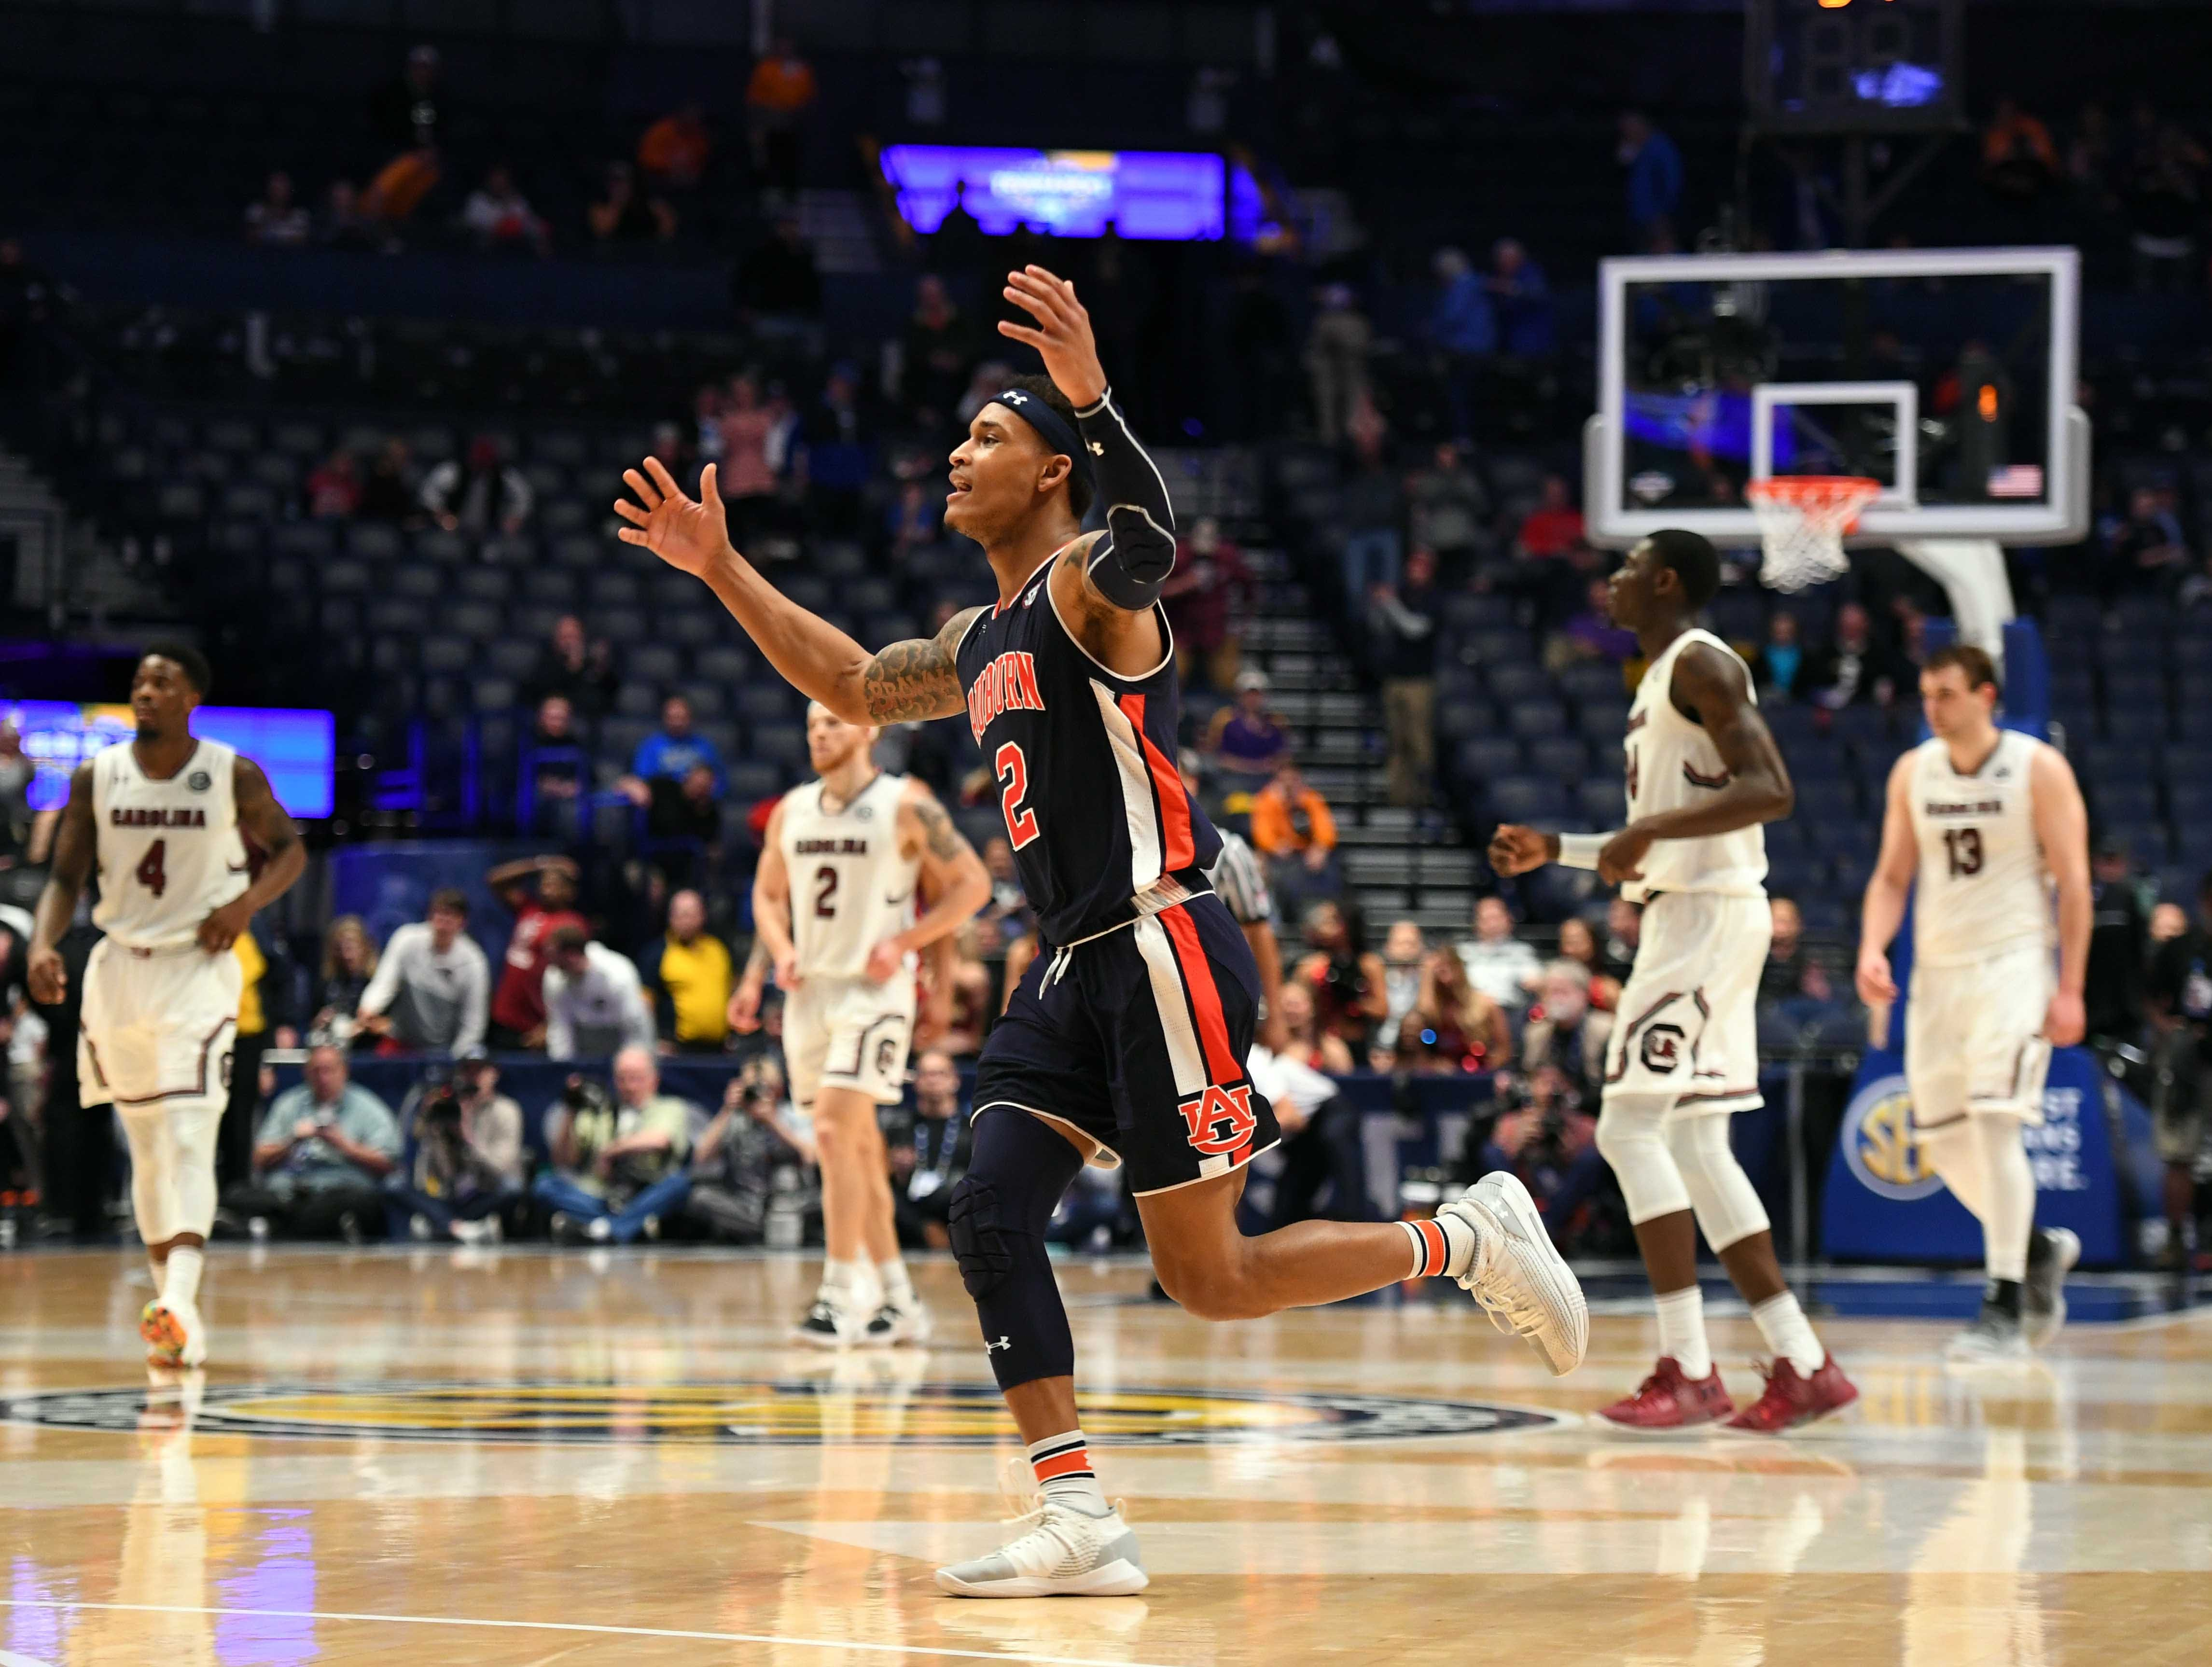 Mar 15, 2019; Nashville, TN, USA; Auburn Tigers guard Bryce Brown (2) celebrates after beating the South Carolina Gamecocks in the SEC conference tournament at Bridgestone Arena. Mandatory Credit: Christopher Hanewinckel-USA TODAY Sports